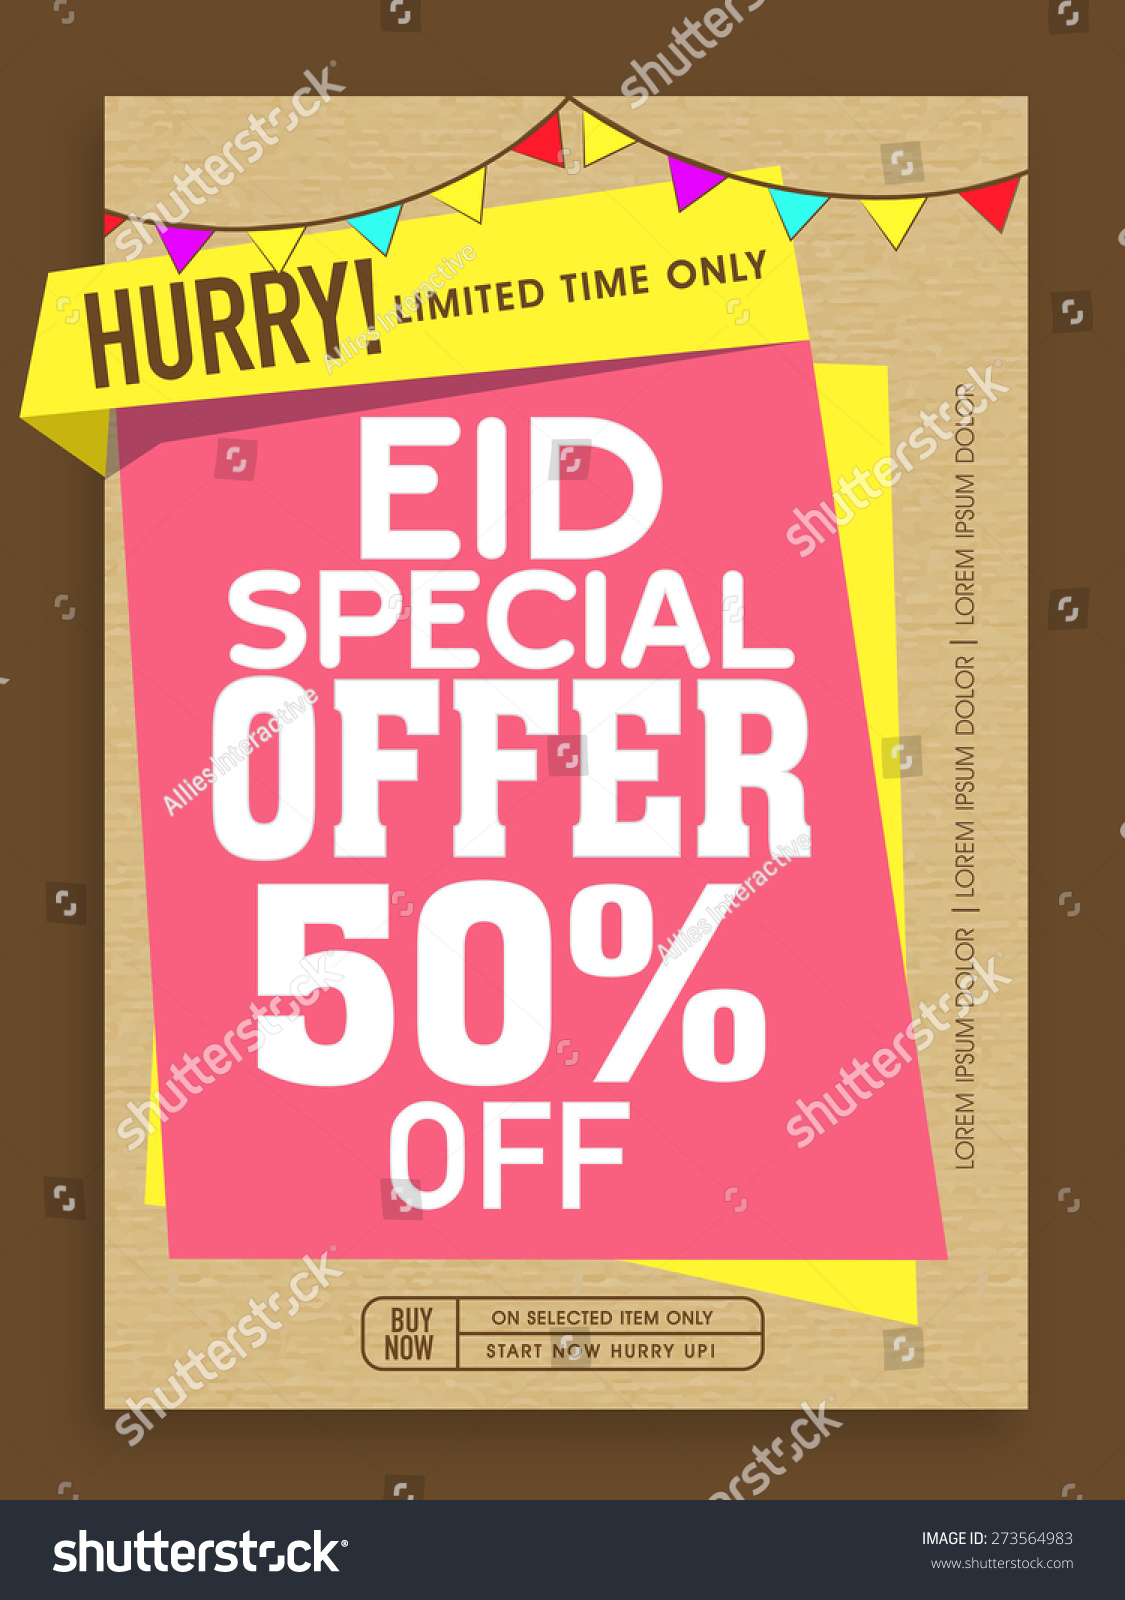 special offer poster banner flyer stock vector  special offer poster banner or flyer decorated colorful buntings on occasion of islamic